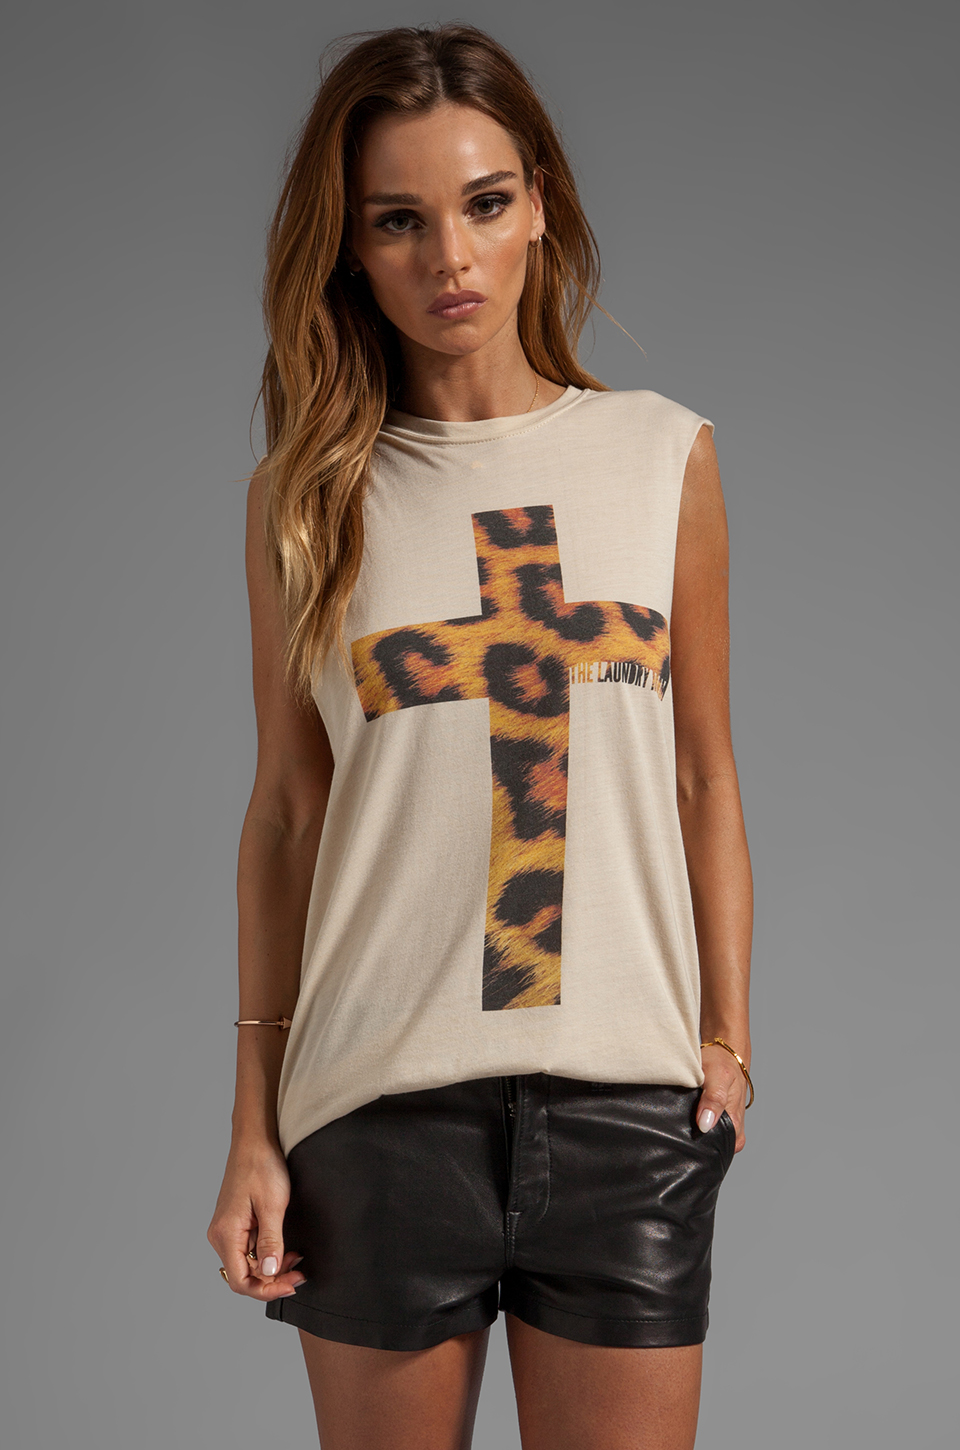 The Laundry Room Praise Cheetah Muscle Tee in Nude